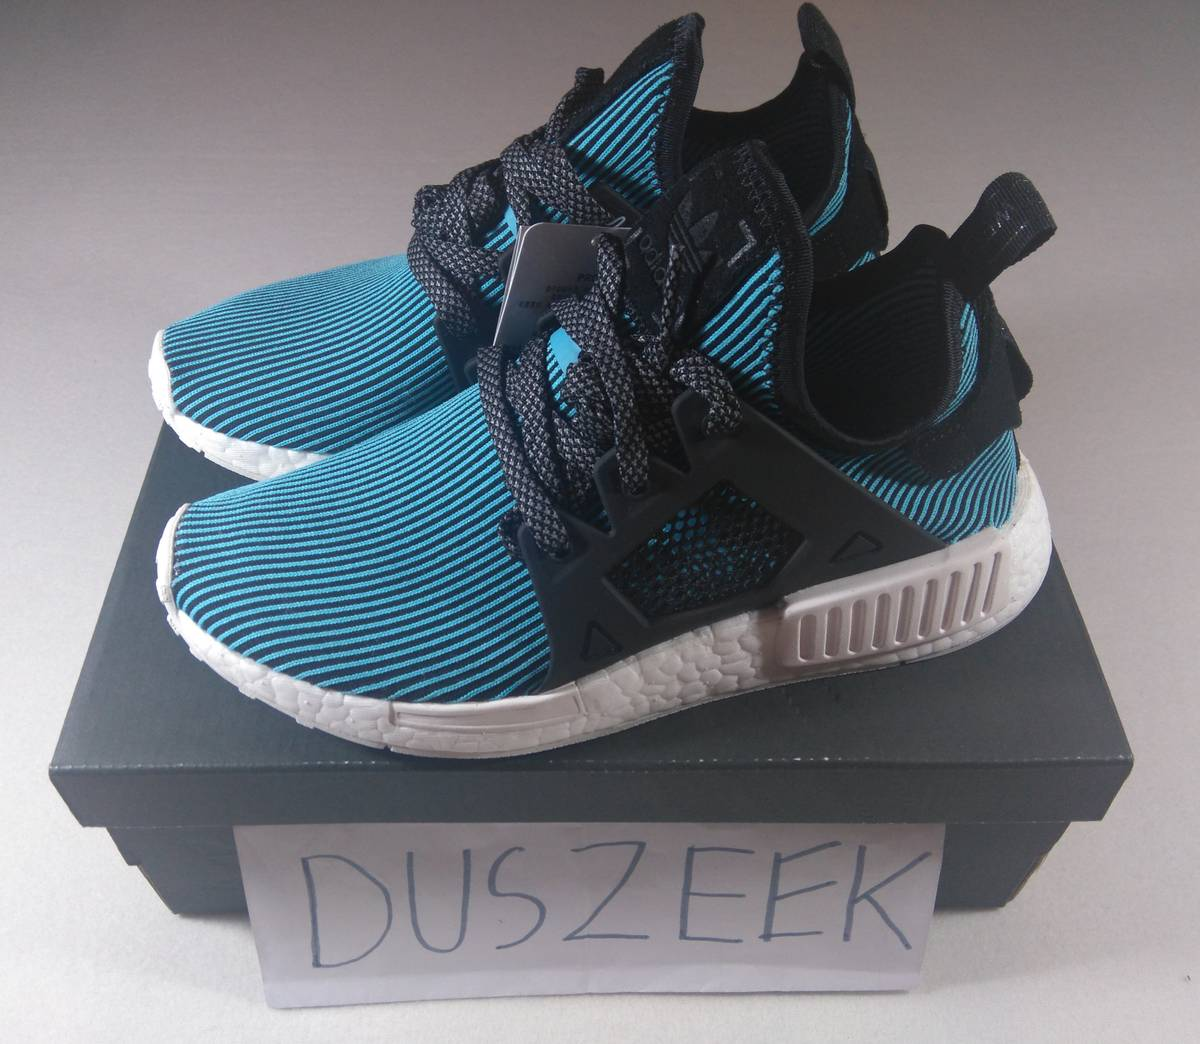 3cefb21026b0d Bargains on Adidas Originals NMD XR1 (Trace Blue Sesame